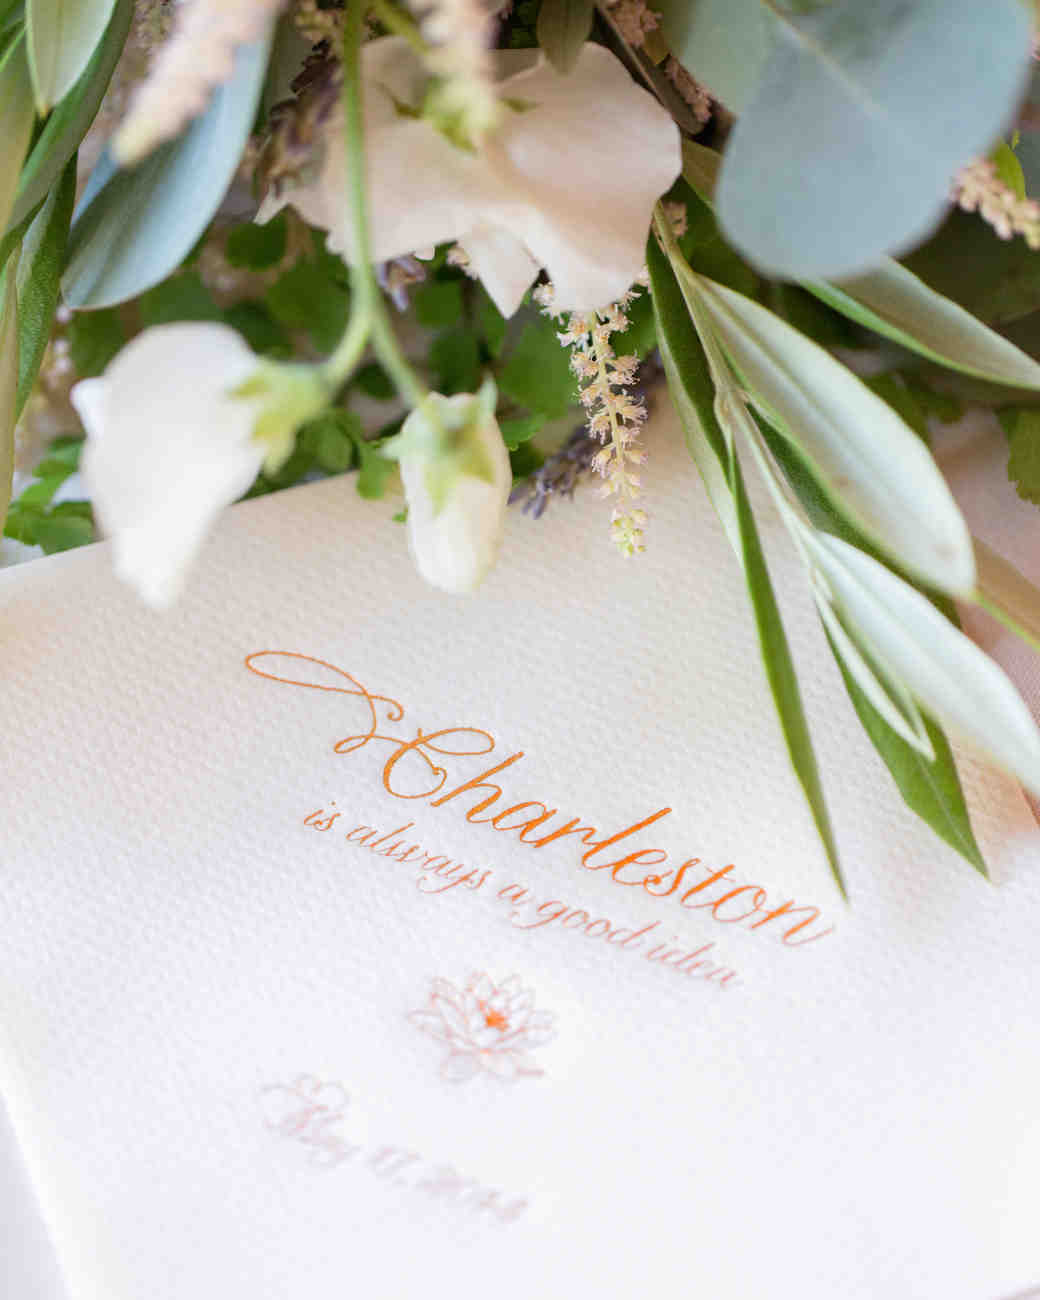 catherine-adrien-wedding-napkin-0763-s111414-0814.jpg